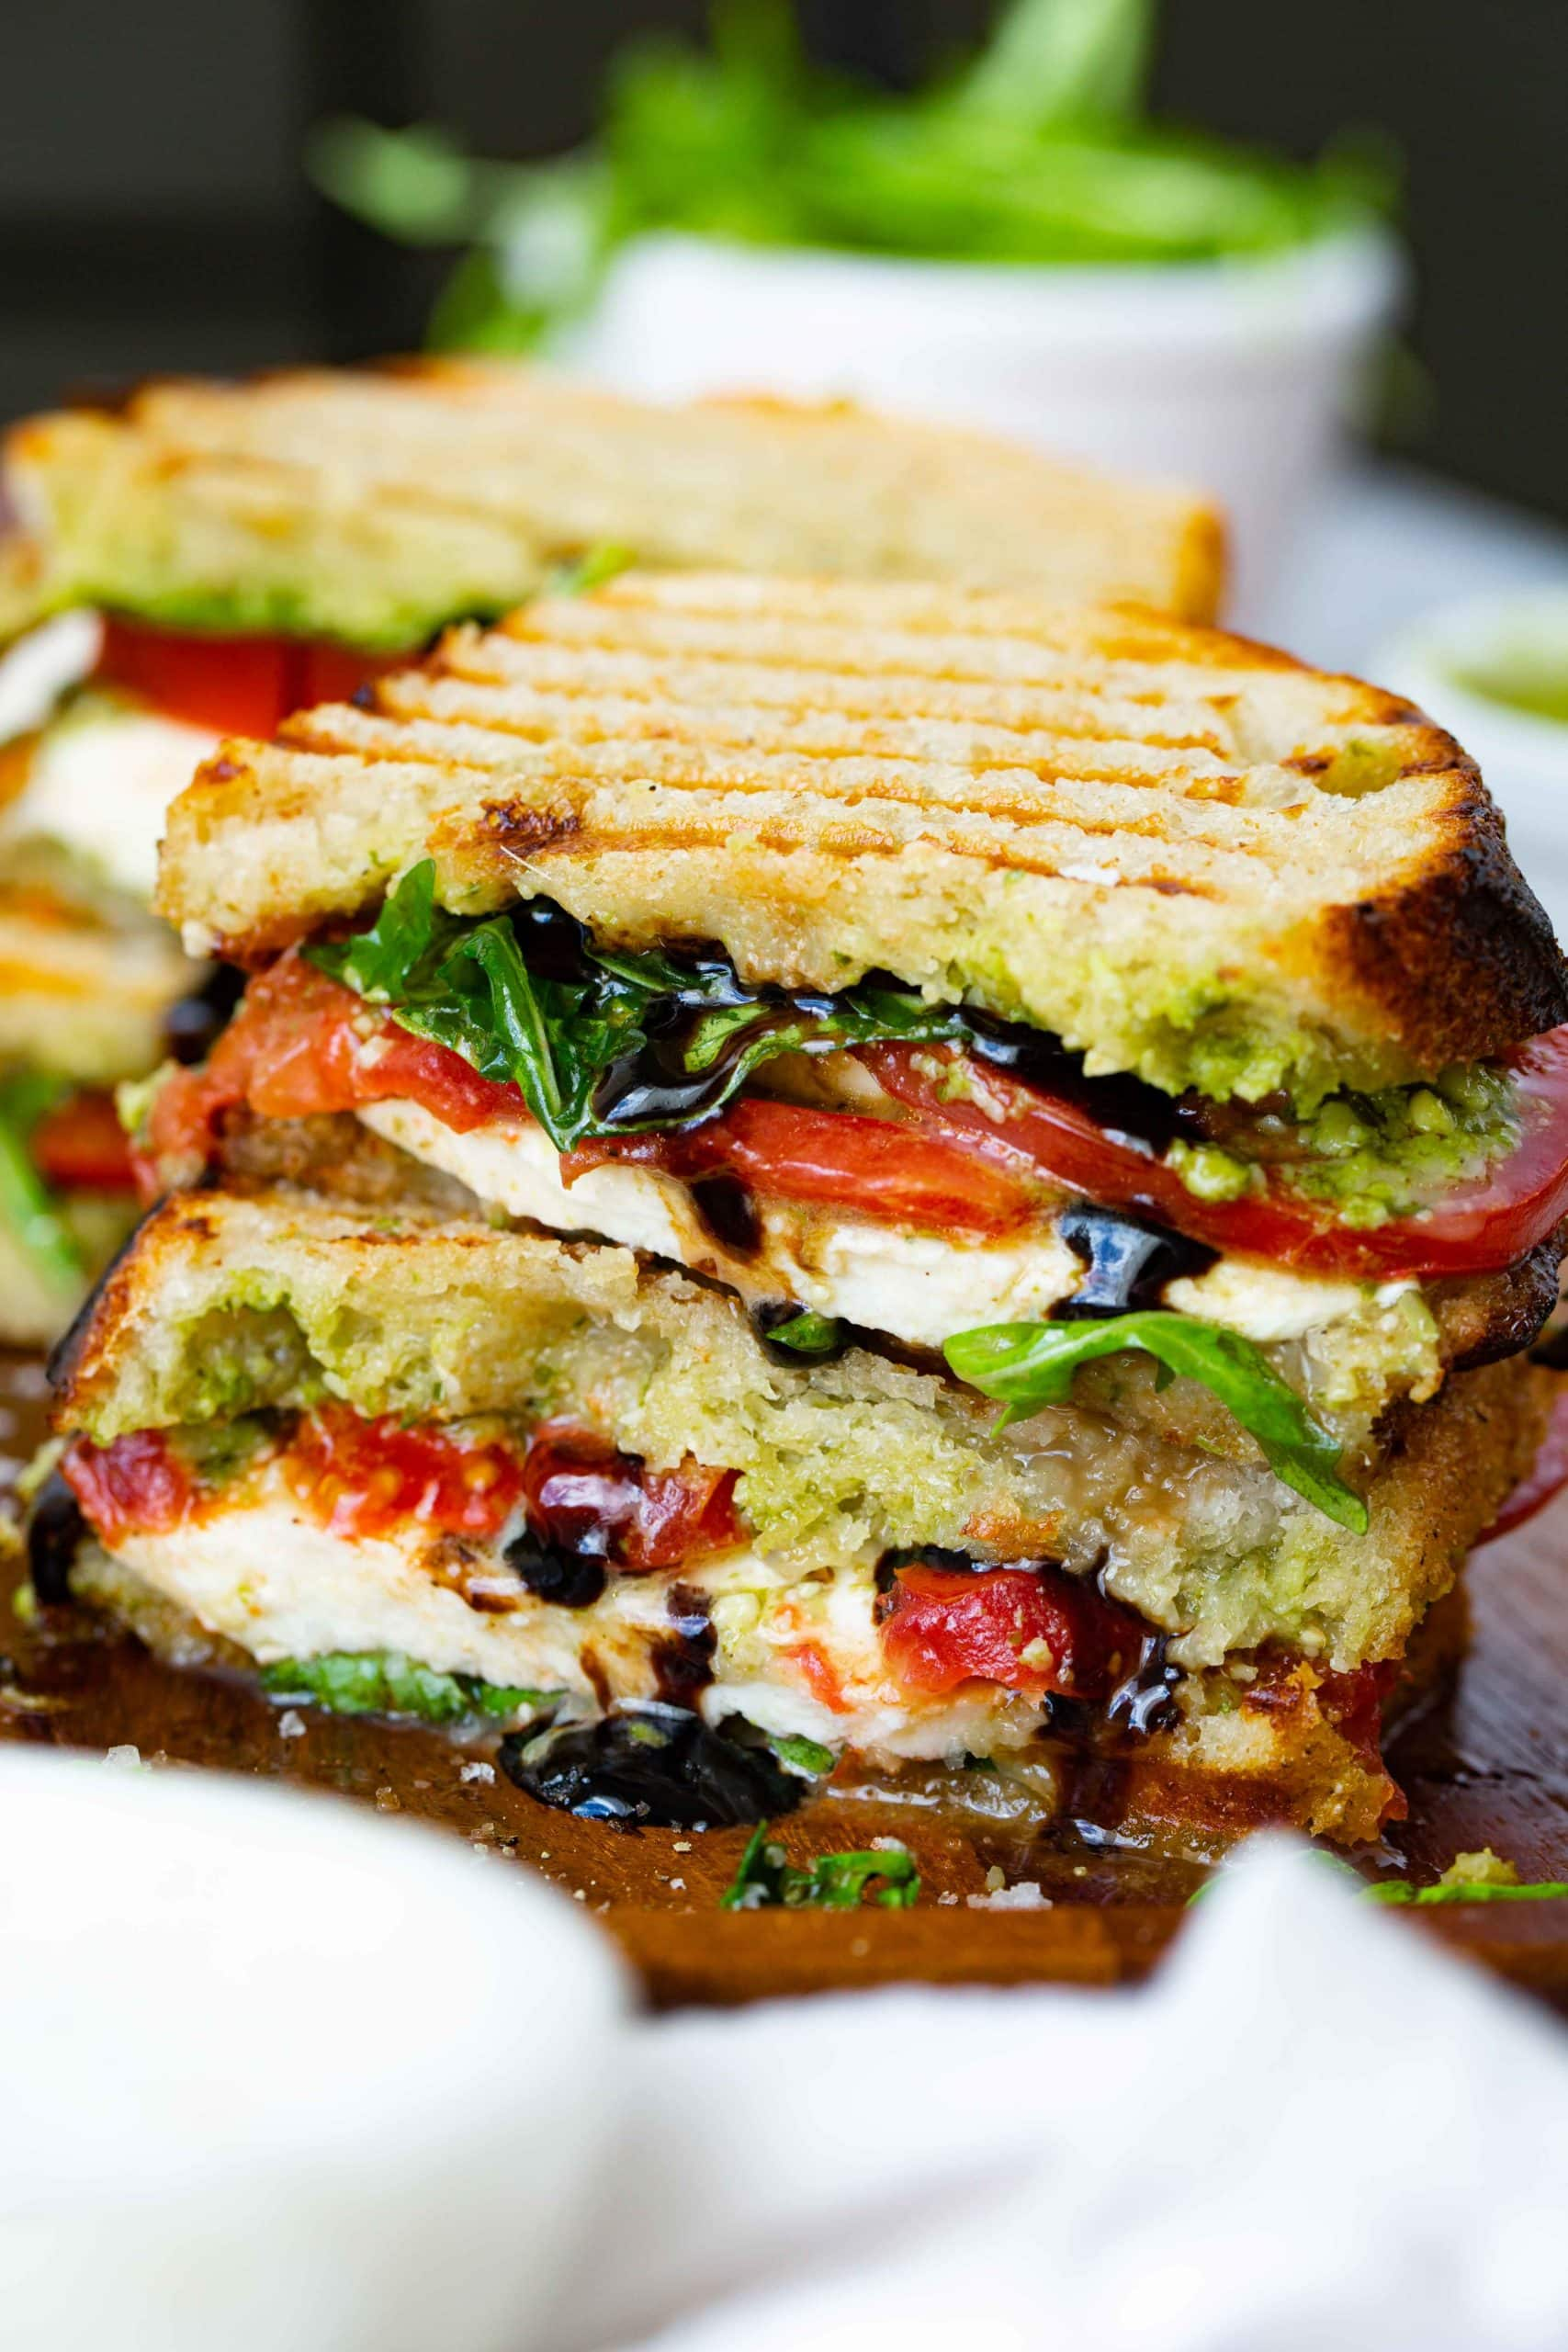 A balsamic glazed caprese sandwich that has been cut in half and stacked on top of each other. The sandwich has grill marks on top and has arugula, fresh mozzarella cheese slices and tomato slices inside. You can see the balsamic glaze dribbling out of the sandwich and another sandwich in the background.